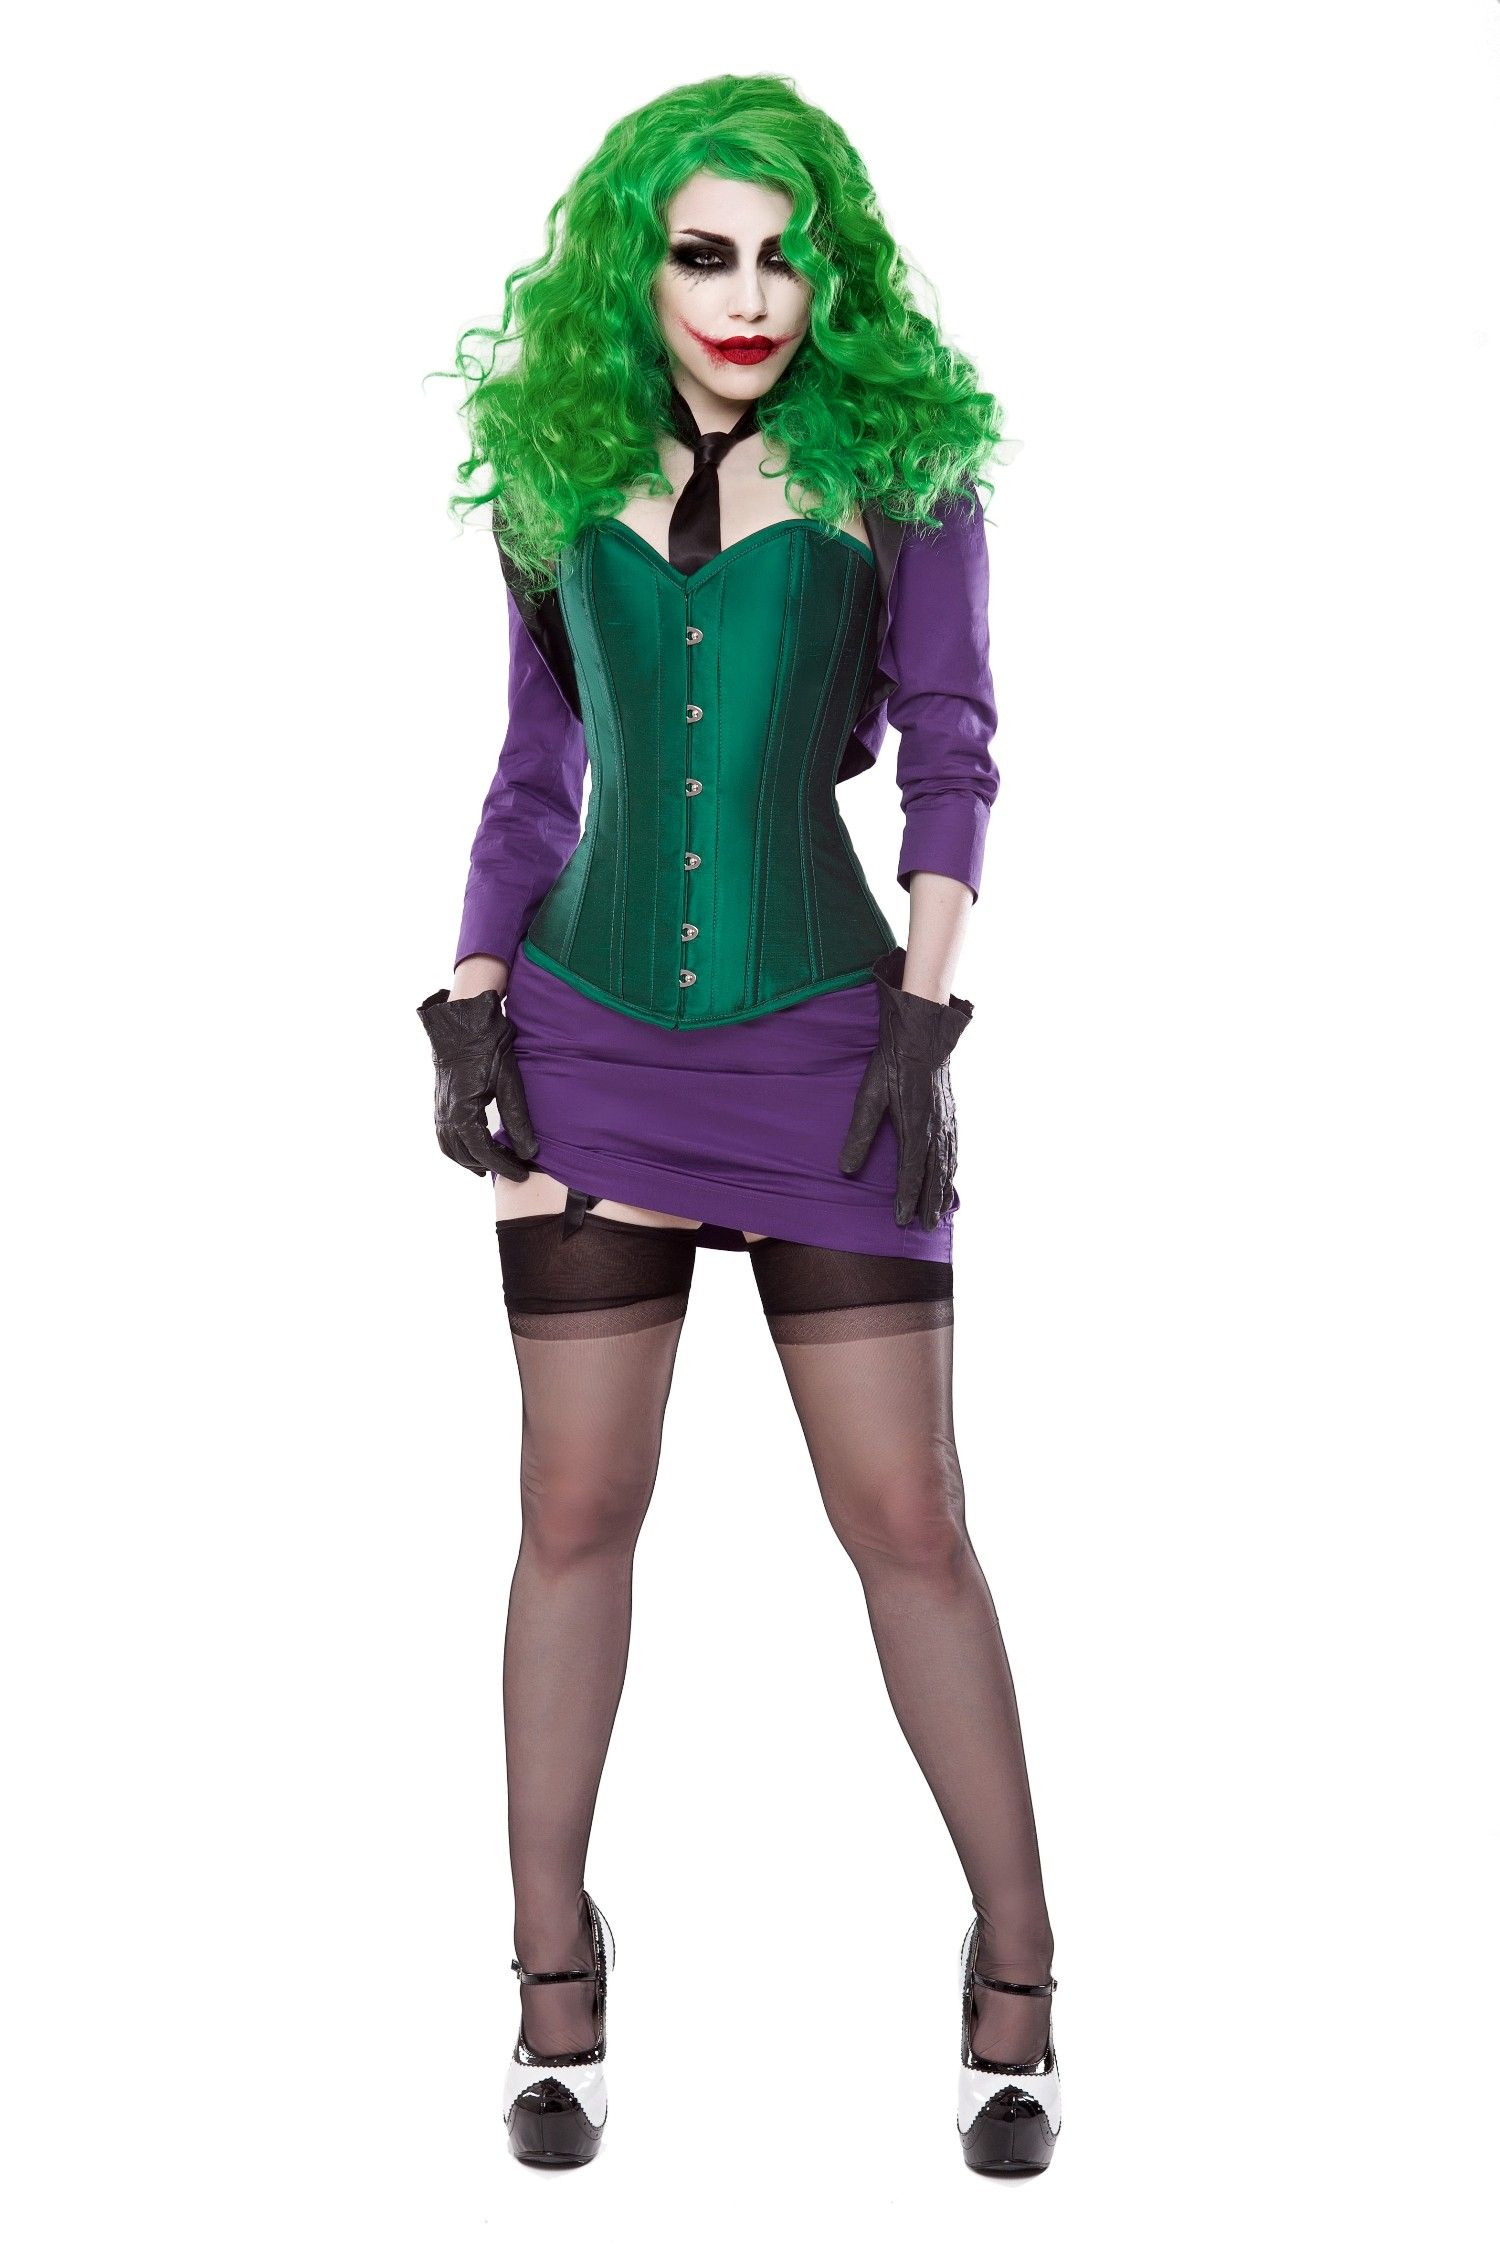 f7675007d2 Green Silk Corset With Purple Bolero   Skirt Outfit